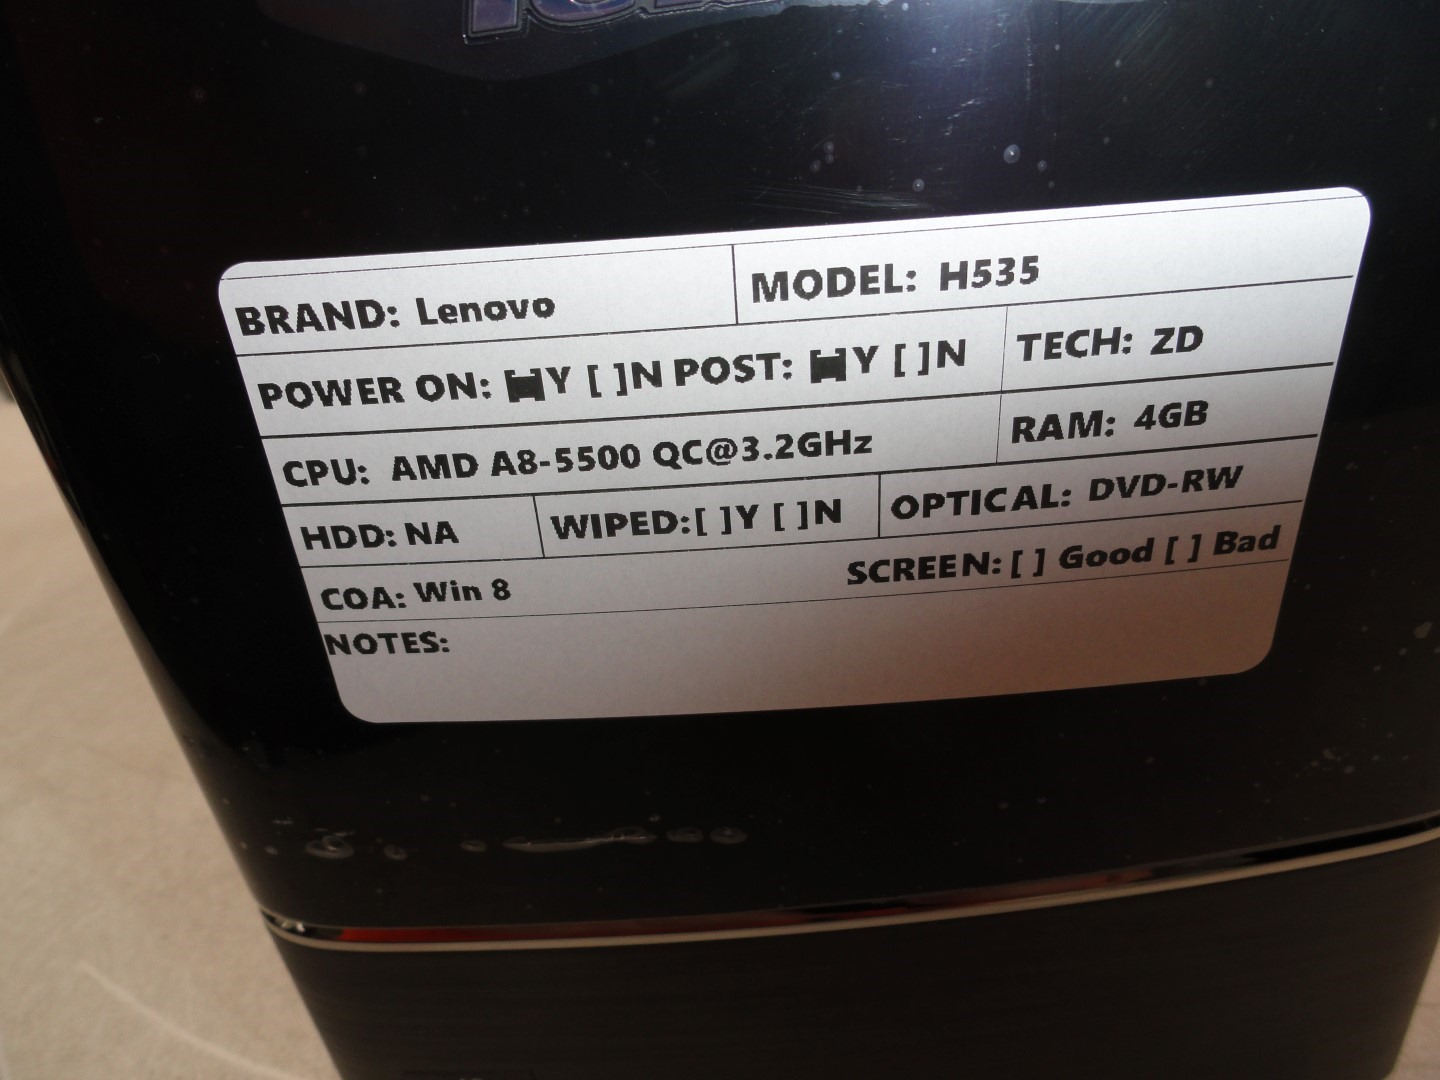 Details about Lenovo H535 Tower PC AMD A8-5500 QC 3 2GHz 4GB 0HD Boots with  DVD-RW